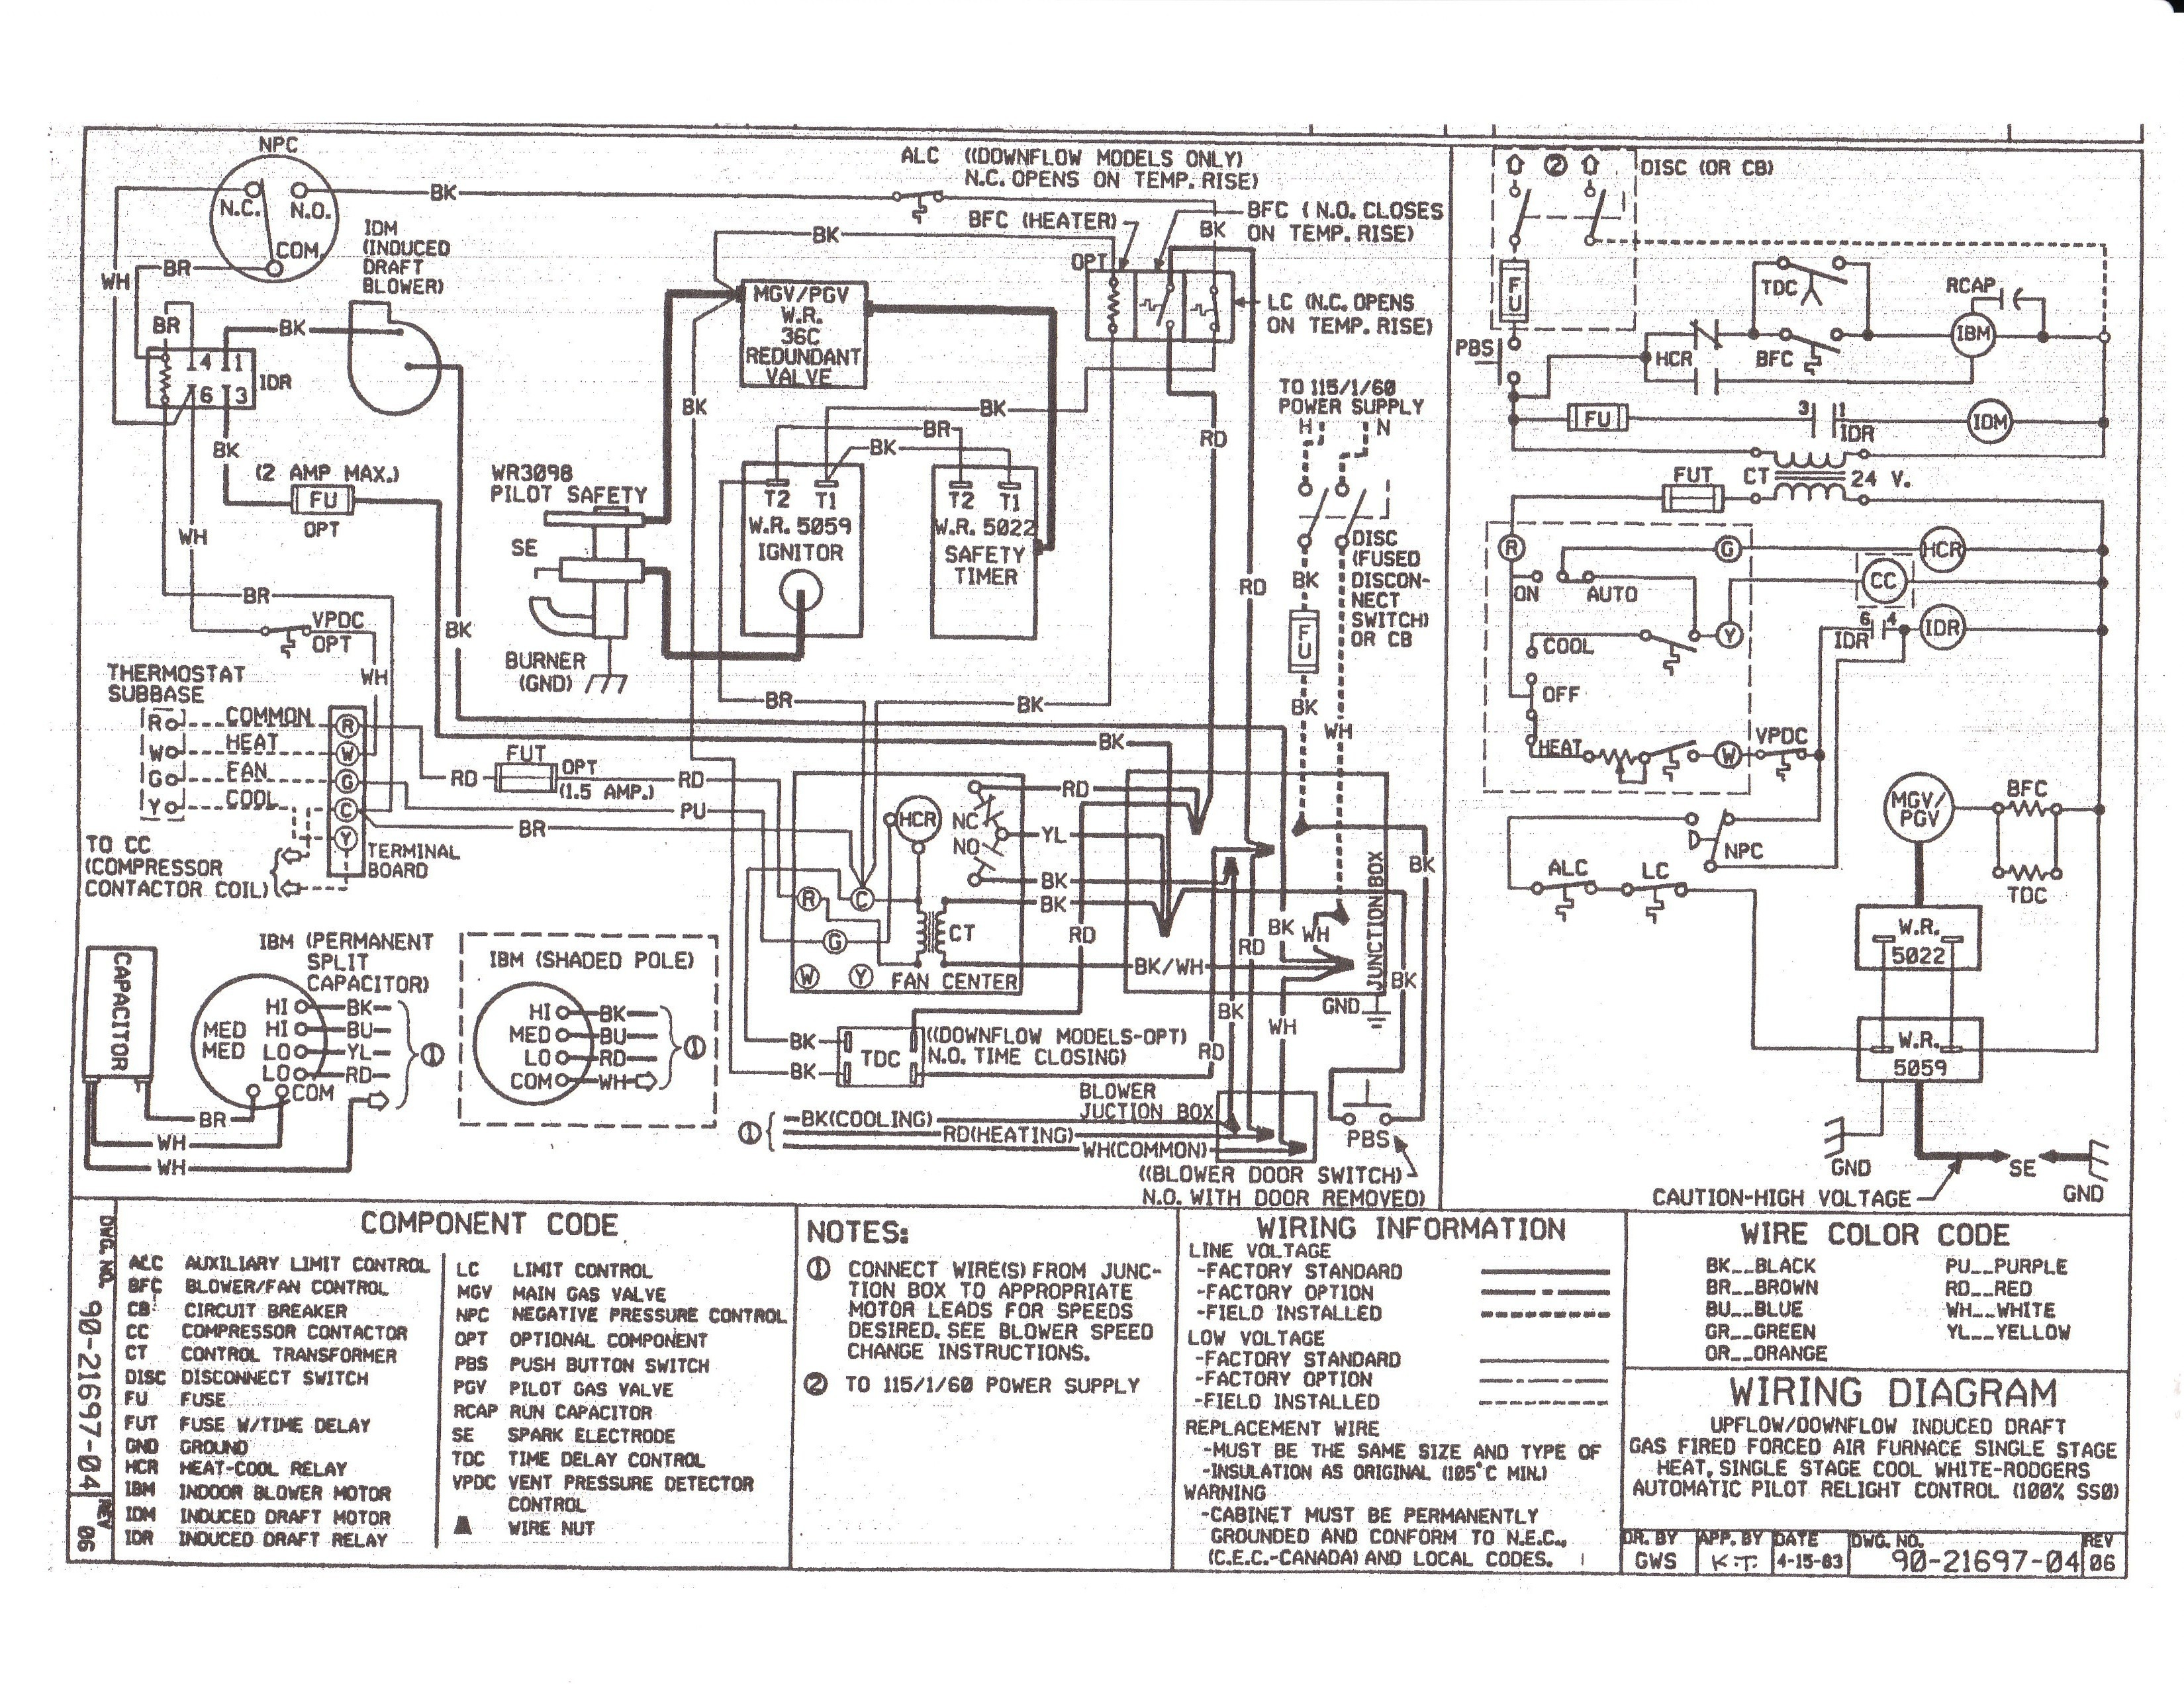 coleman mobile home gas furnace wiring diagram Collection-Manufactured Home Wiring Diagram Refrence Wiring Diagram for Mobile Home Furnace 20-k